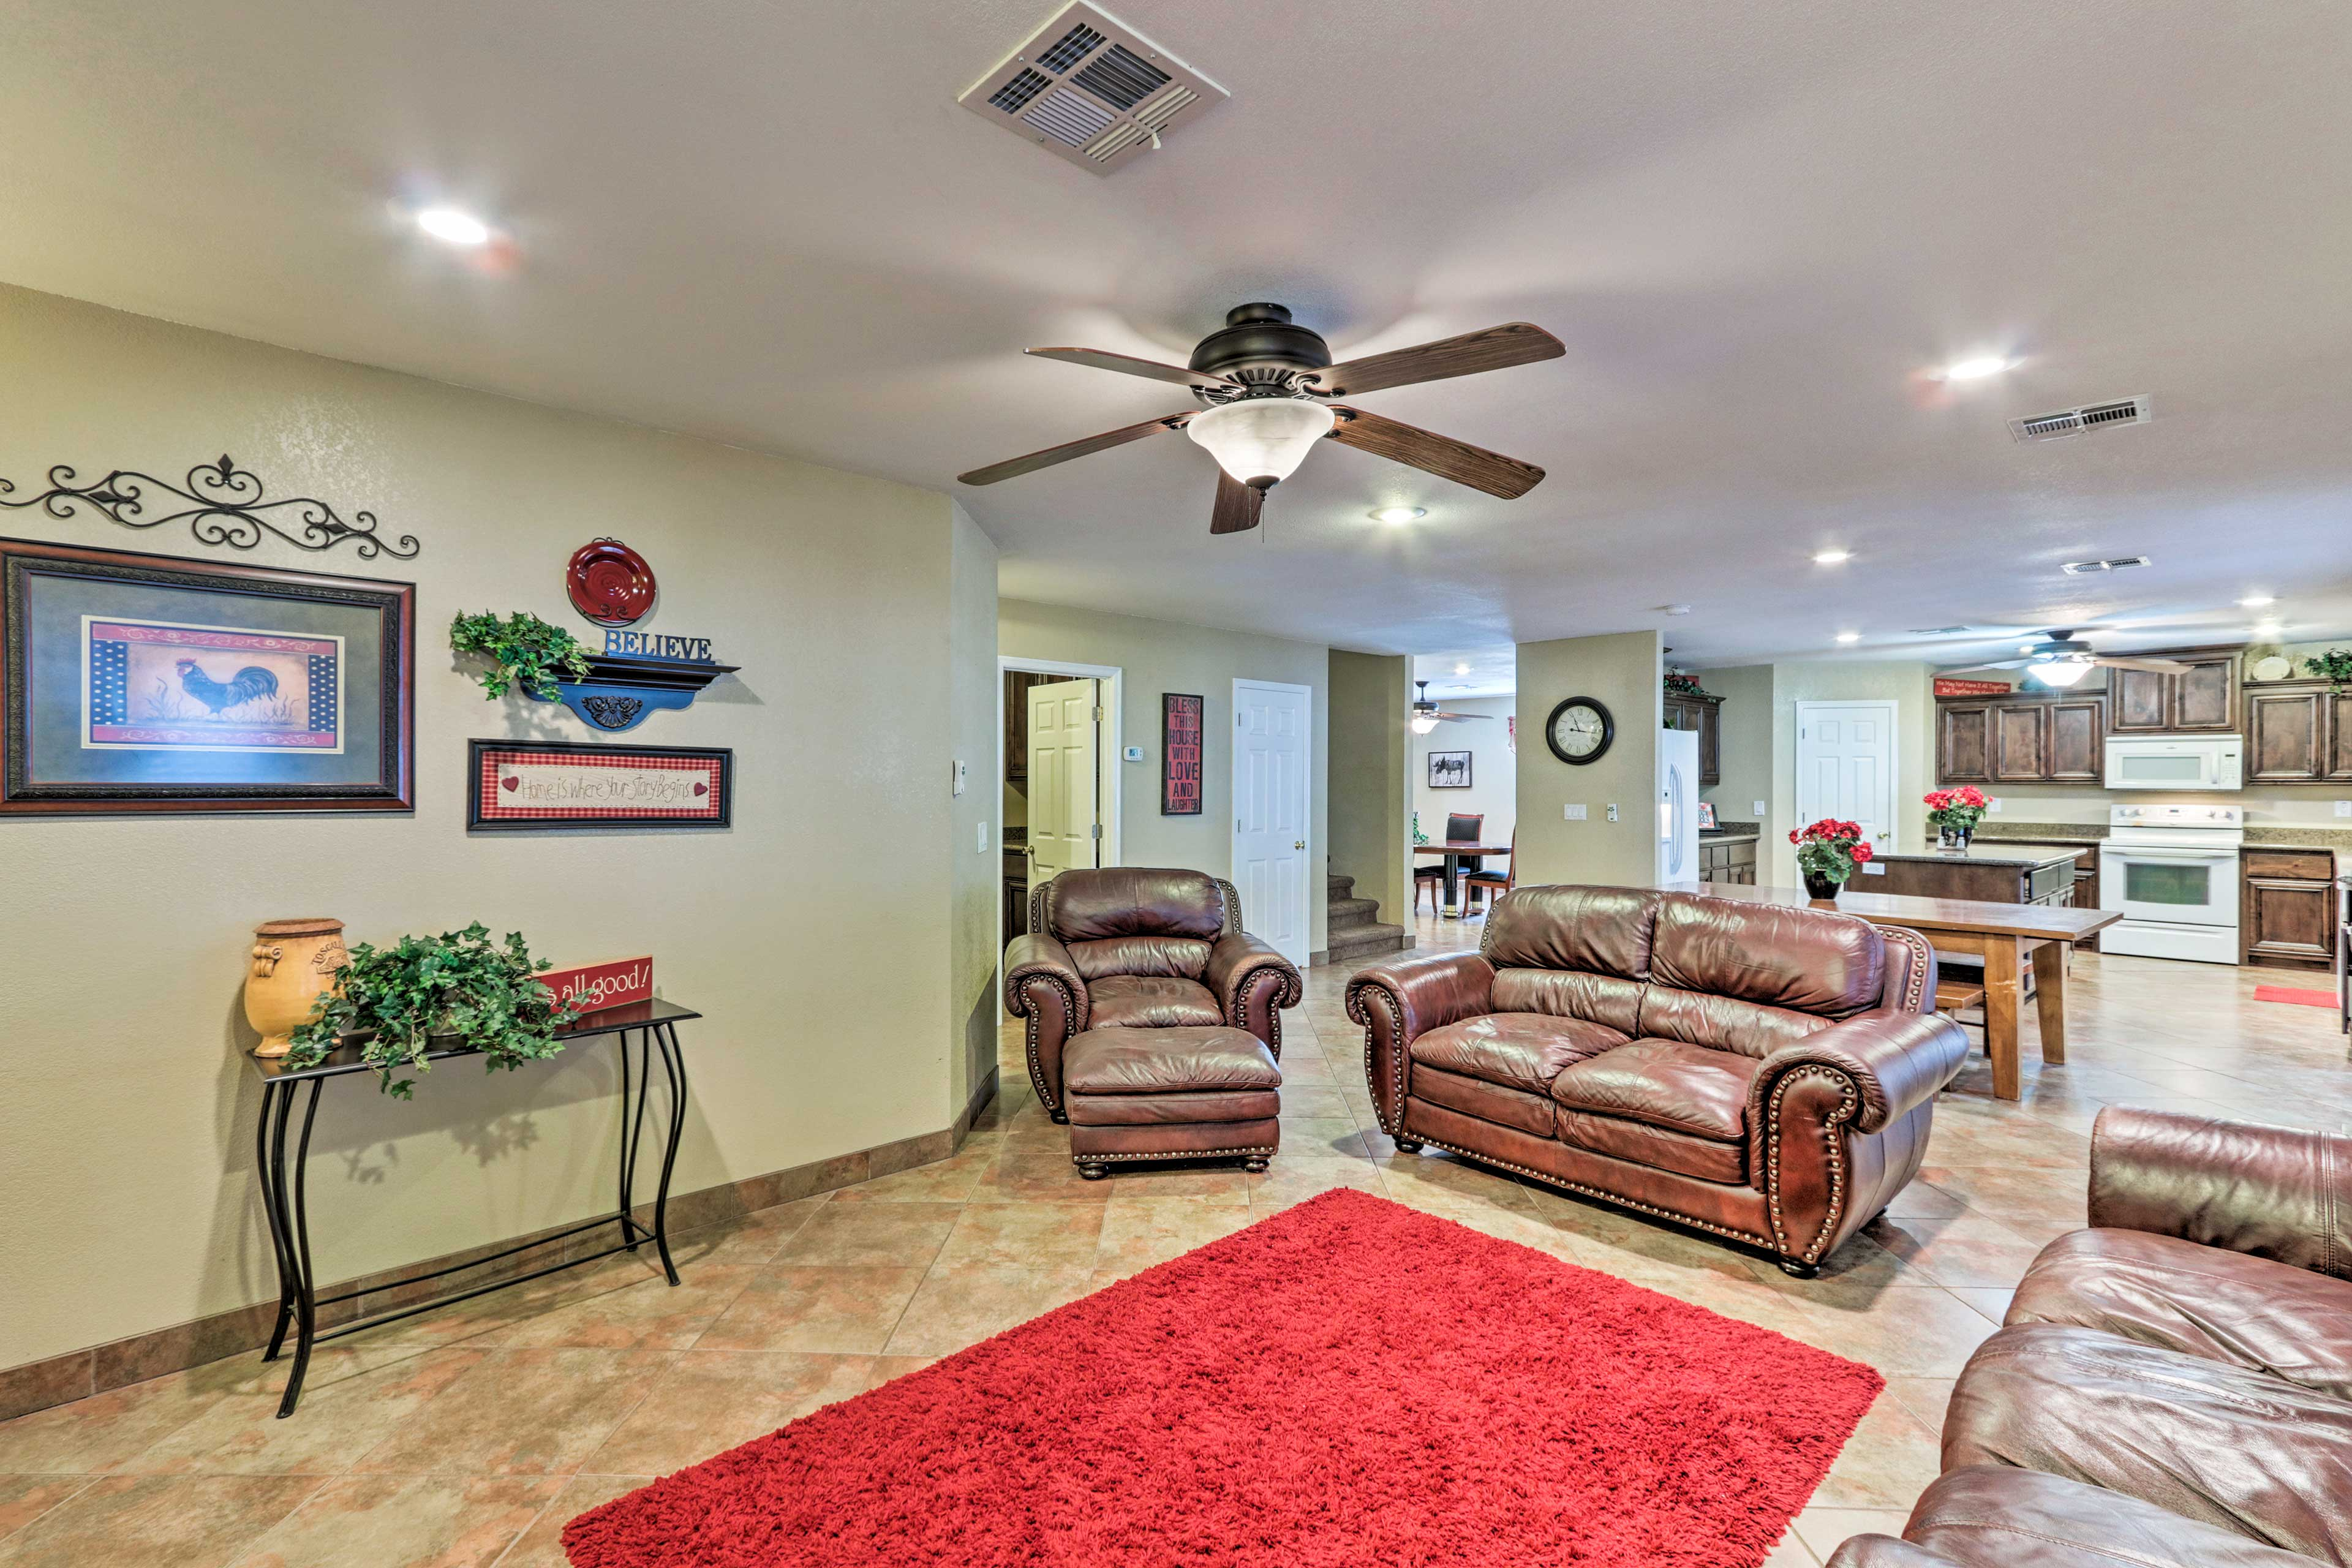 Colorful decor features throughout the home.